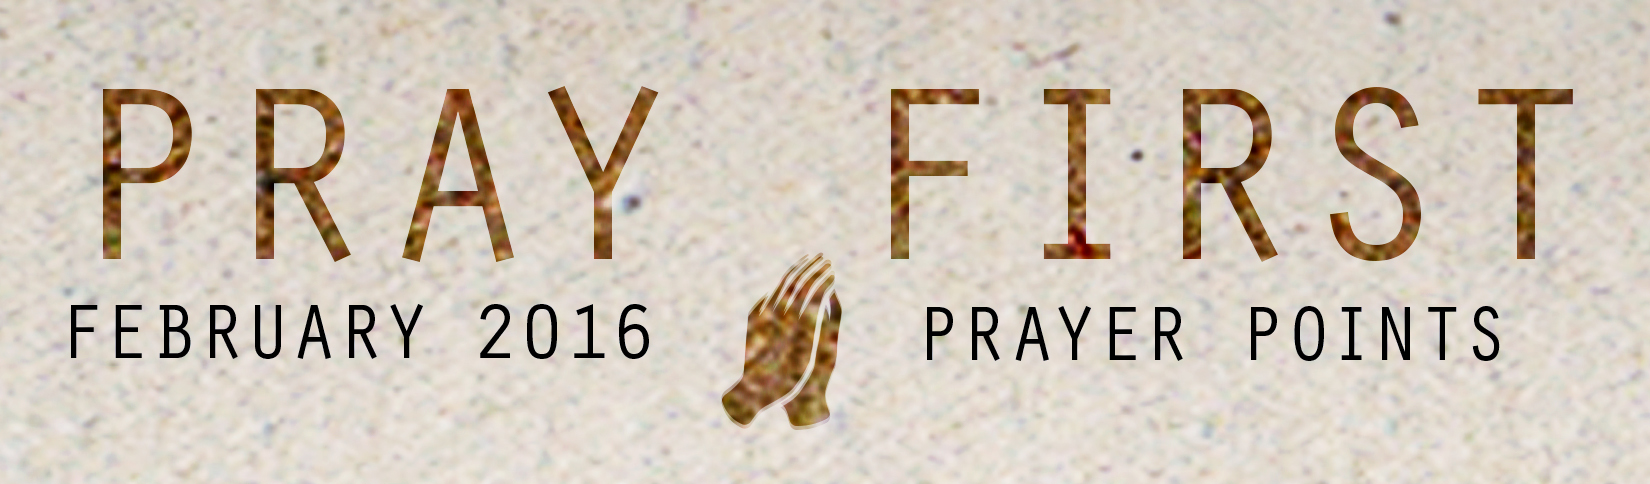 FEBRUARY PRAYER POINTS     Access your copy of the February 2016 Prayer Points  HERE !